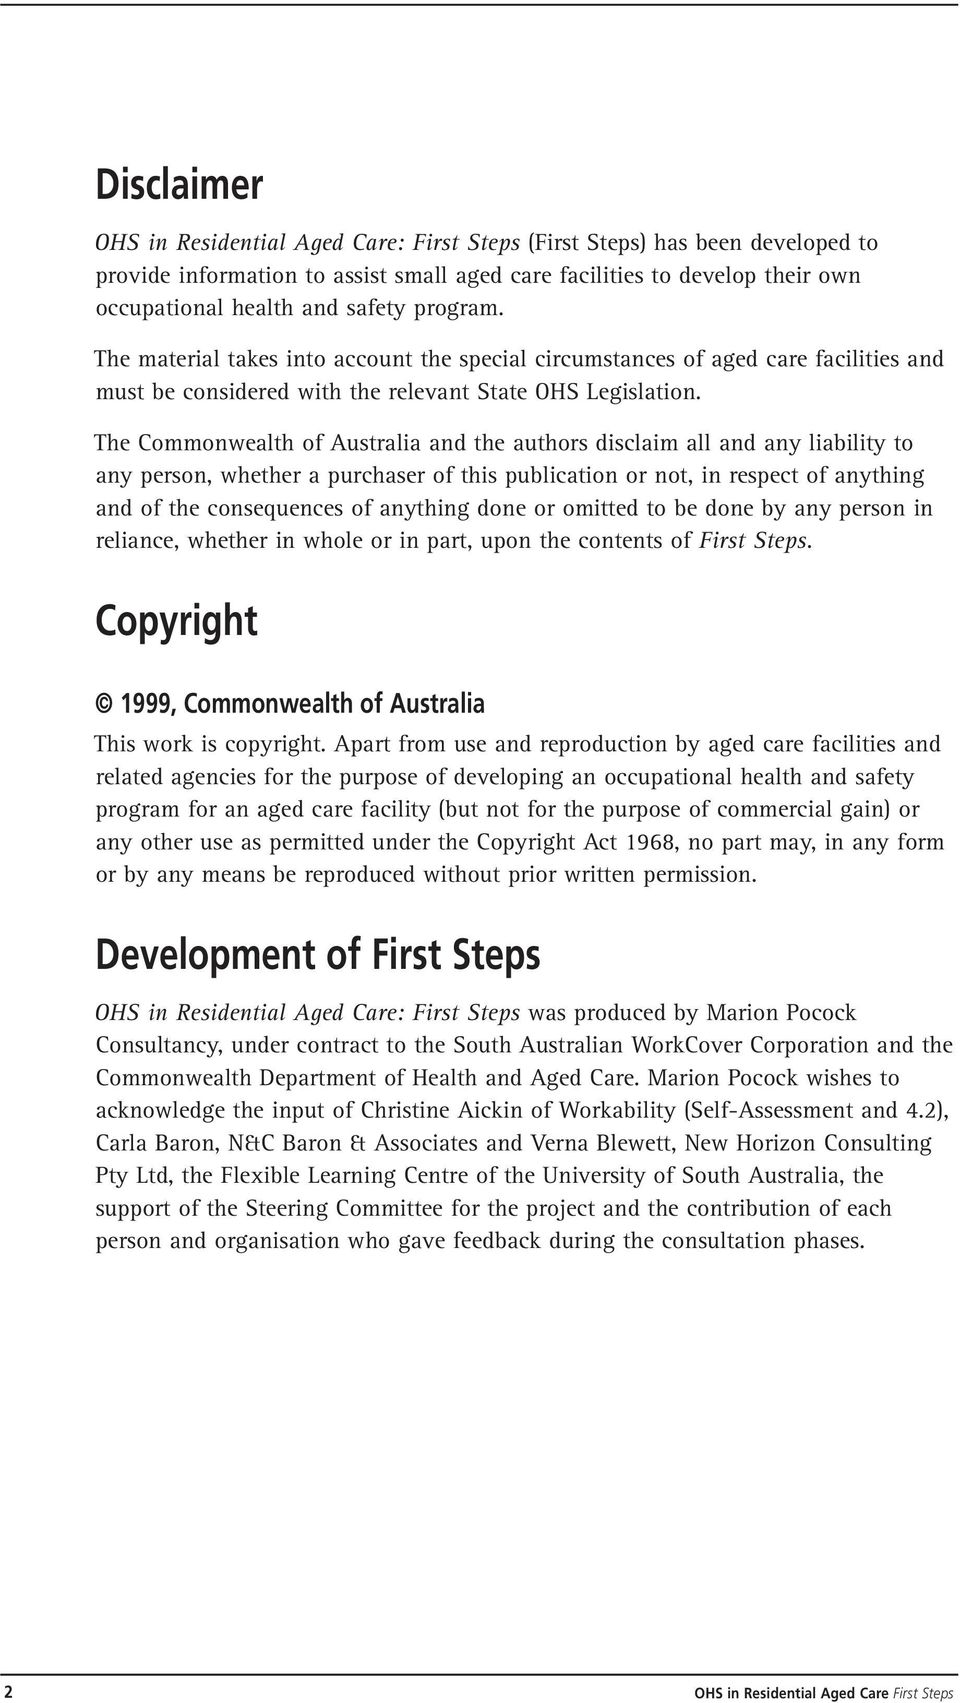 Occupational health and safety in residential aged care first steps the commonwealth of australia and the authors disclaim all and any liability to any person fandeluxe Choice Image